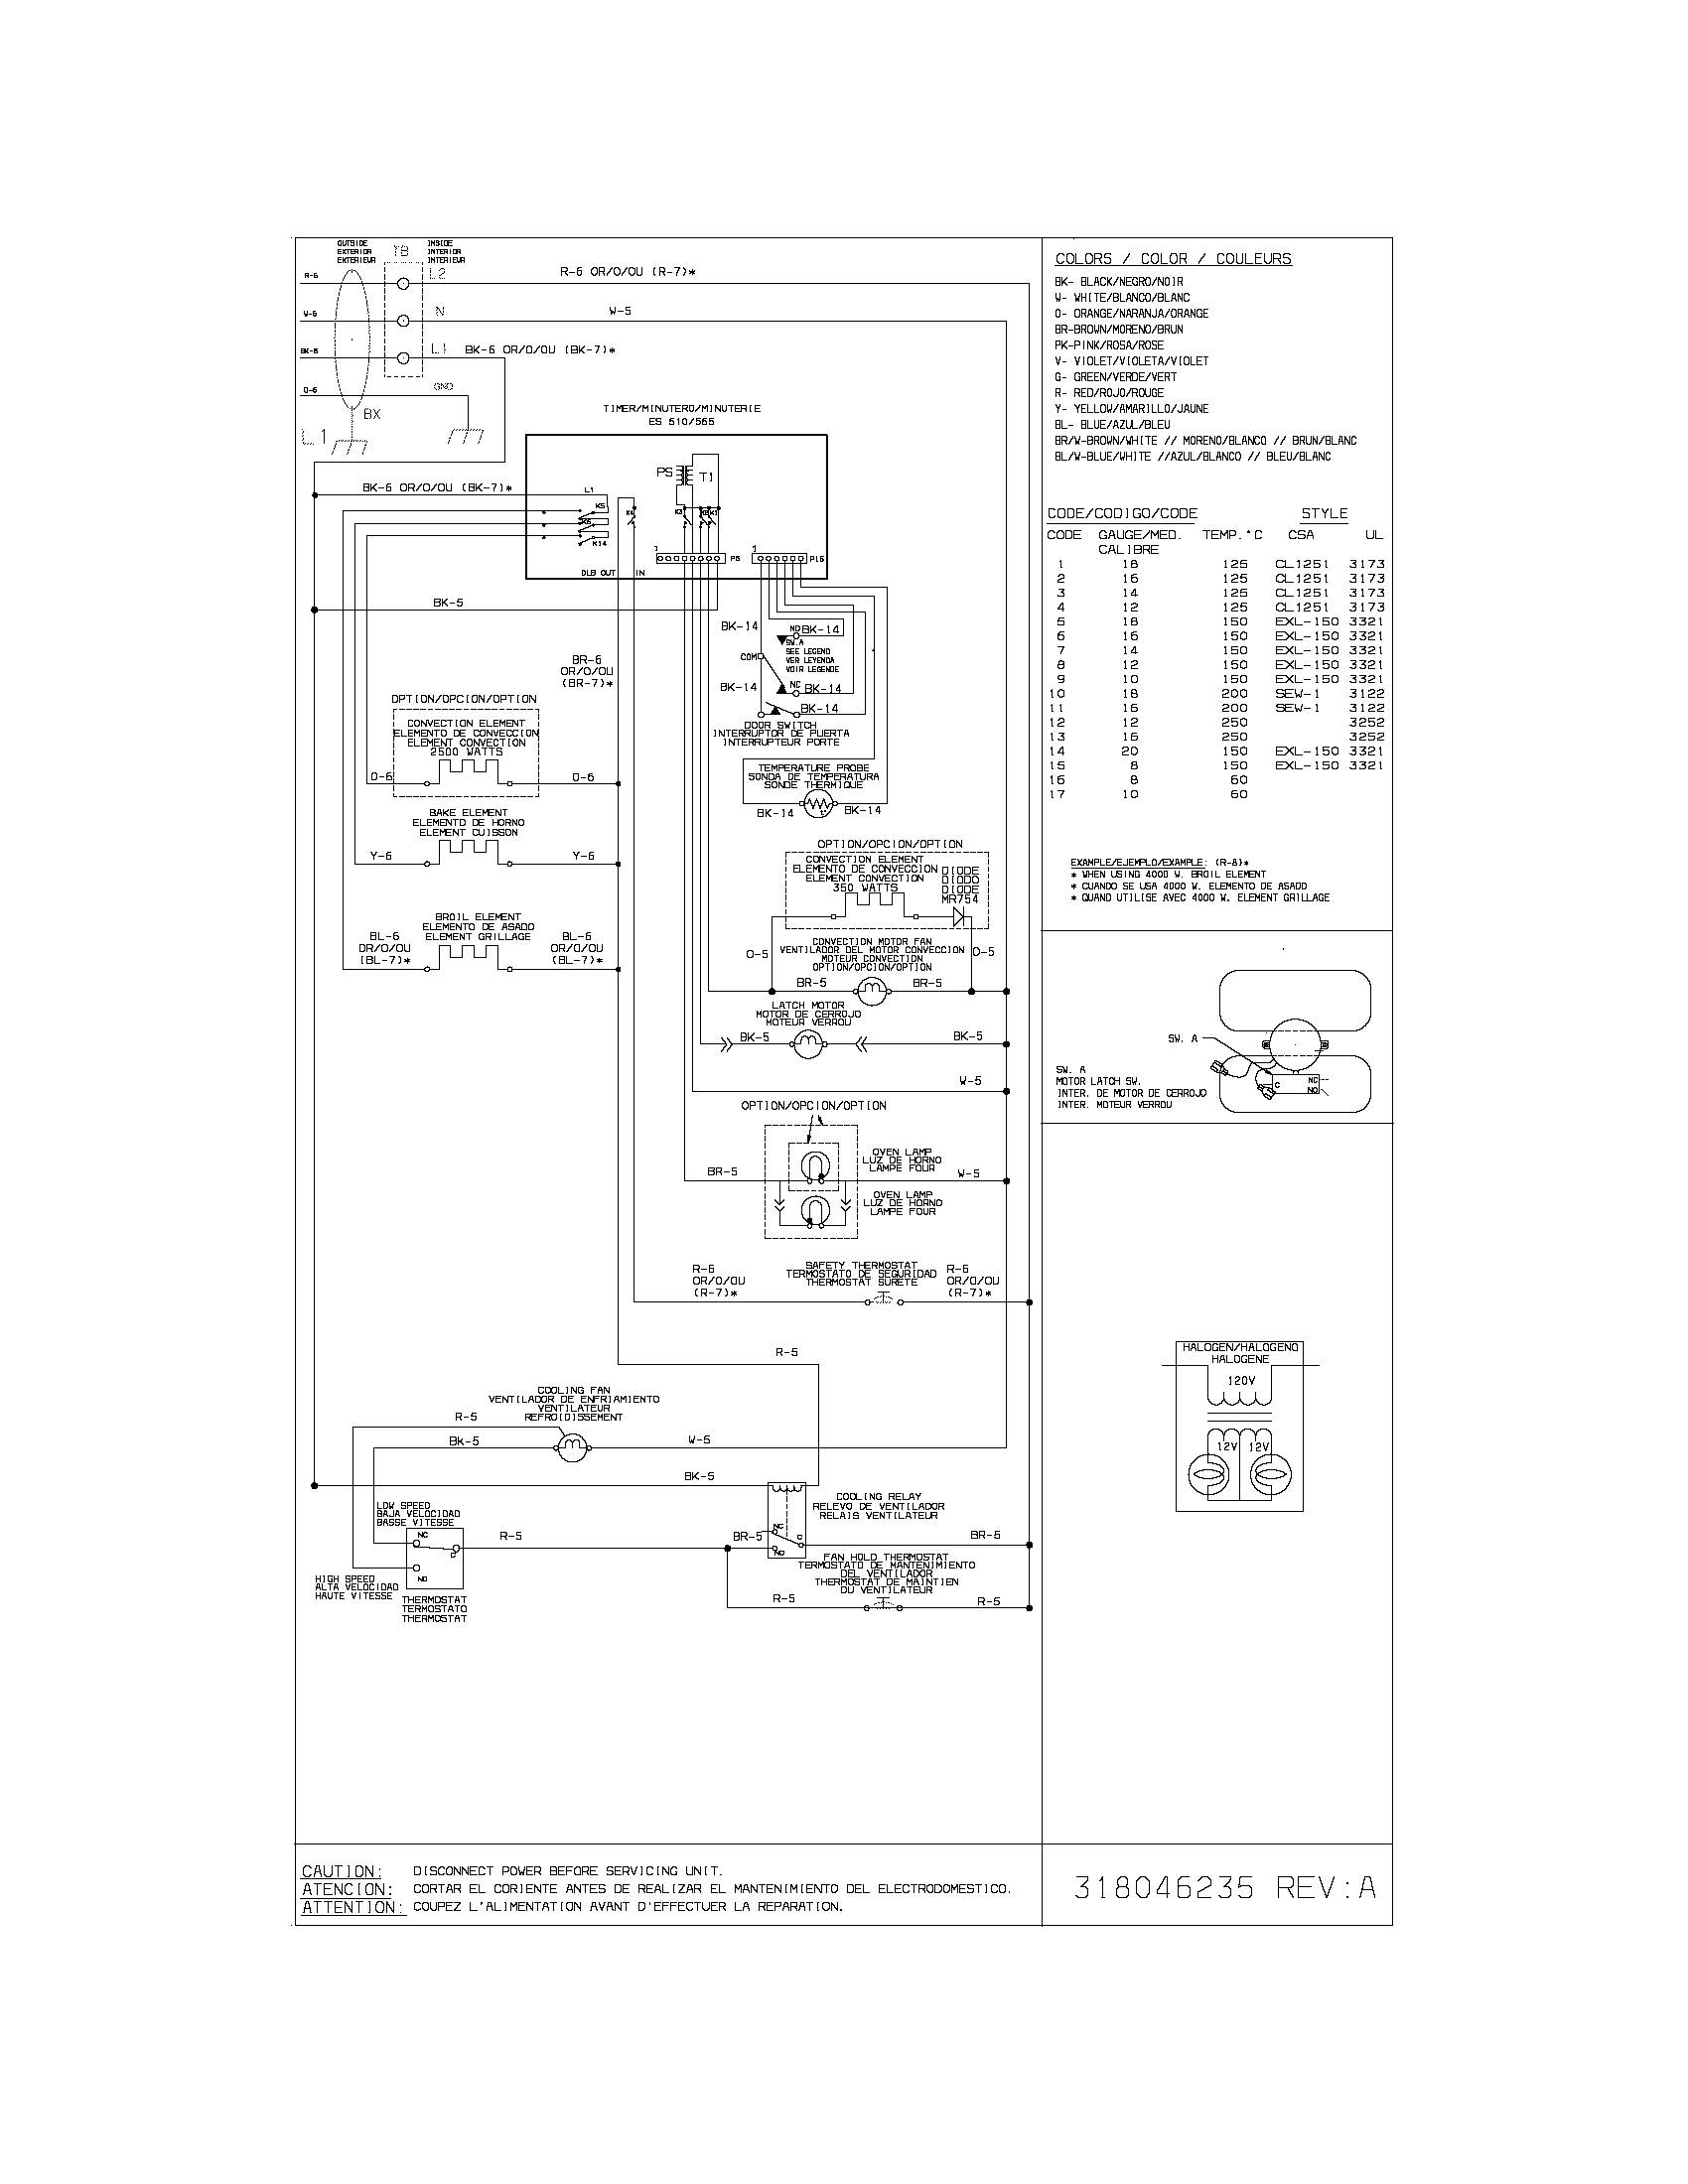 wiring diagram furthermore electrolux wall oven wiring diagram on rh grooveguard co Frigidaire Side by Side Diagram Frigidaire Range Parts Diagrams